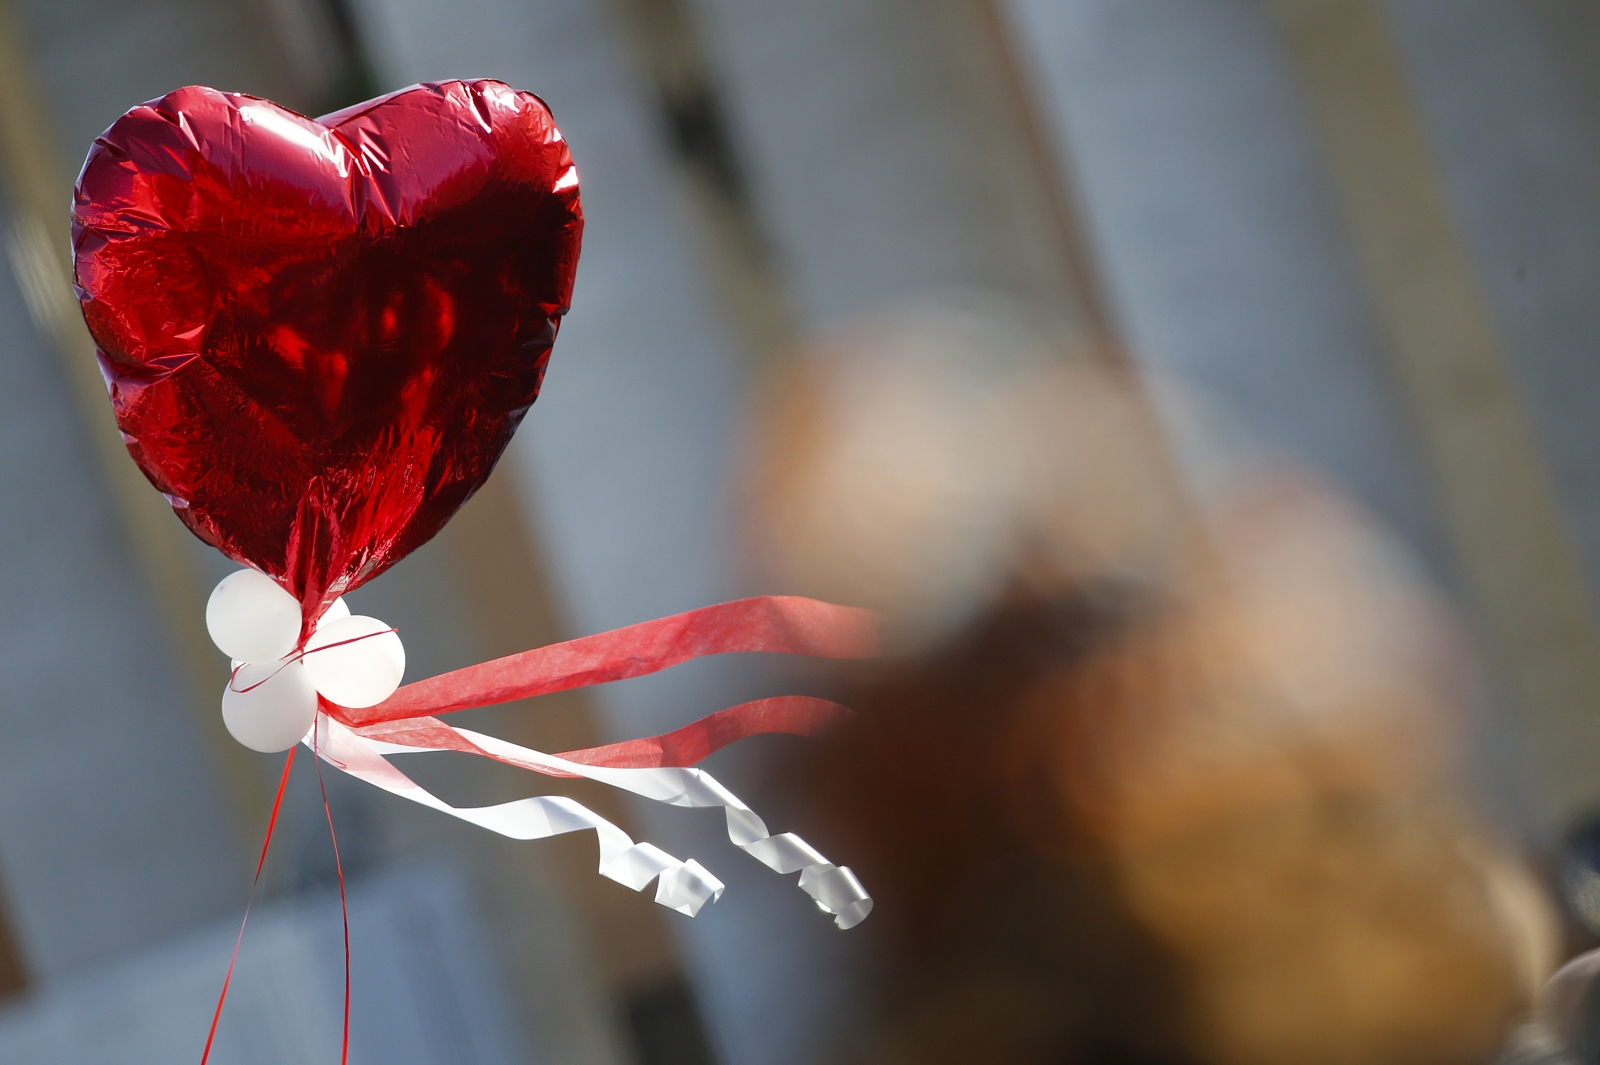 How to buy Valentine's Day gifts online without falling victim to scams and hacks